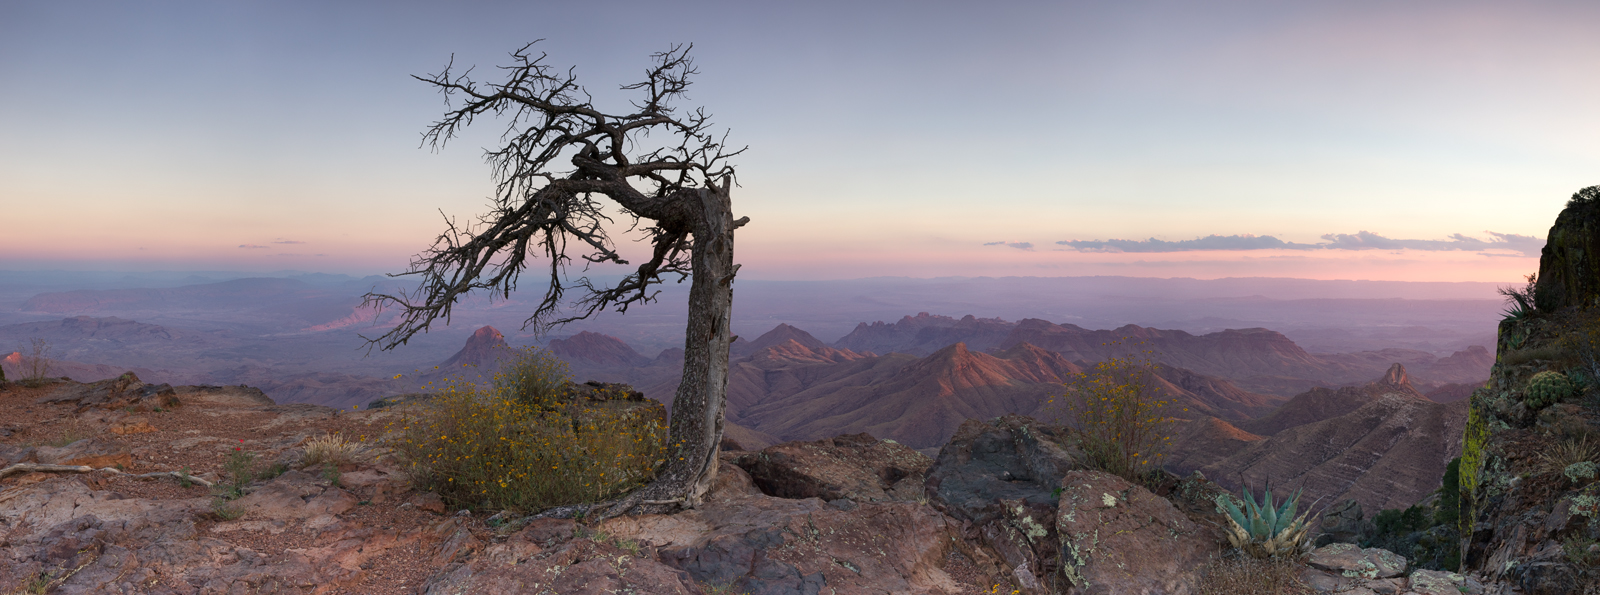 Panoramic, landscape, photography, sunset, Chisos, Big Bend, Texas, lone tree, panoramique, paysage, coucher de soleil, photo